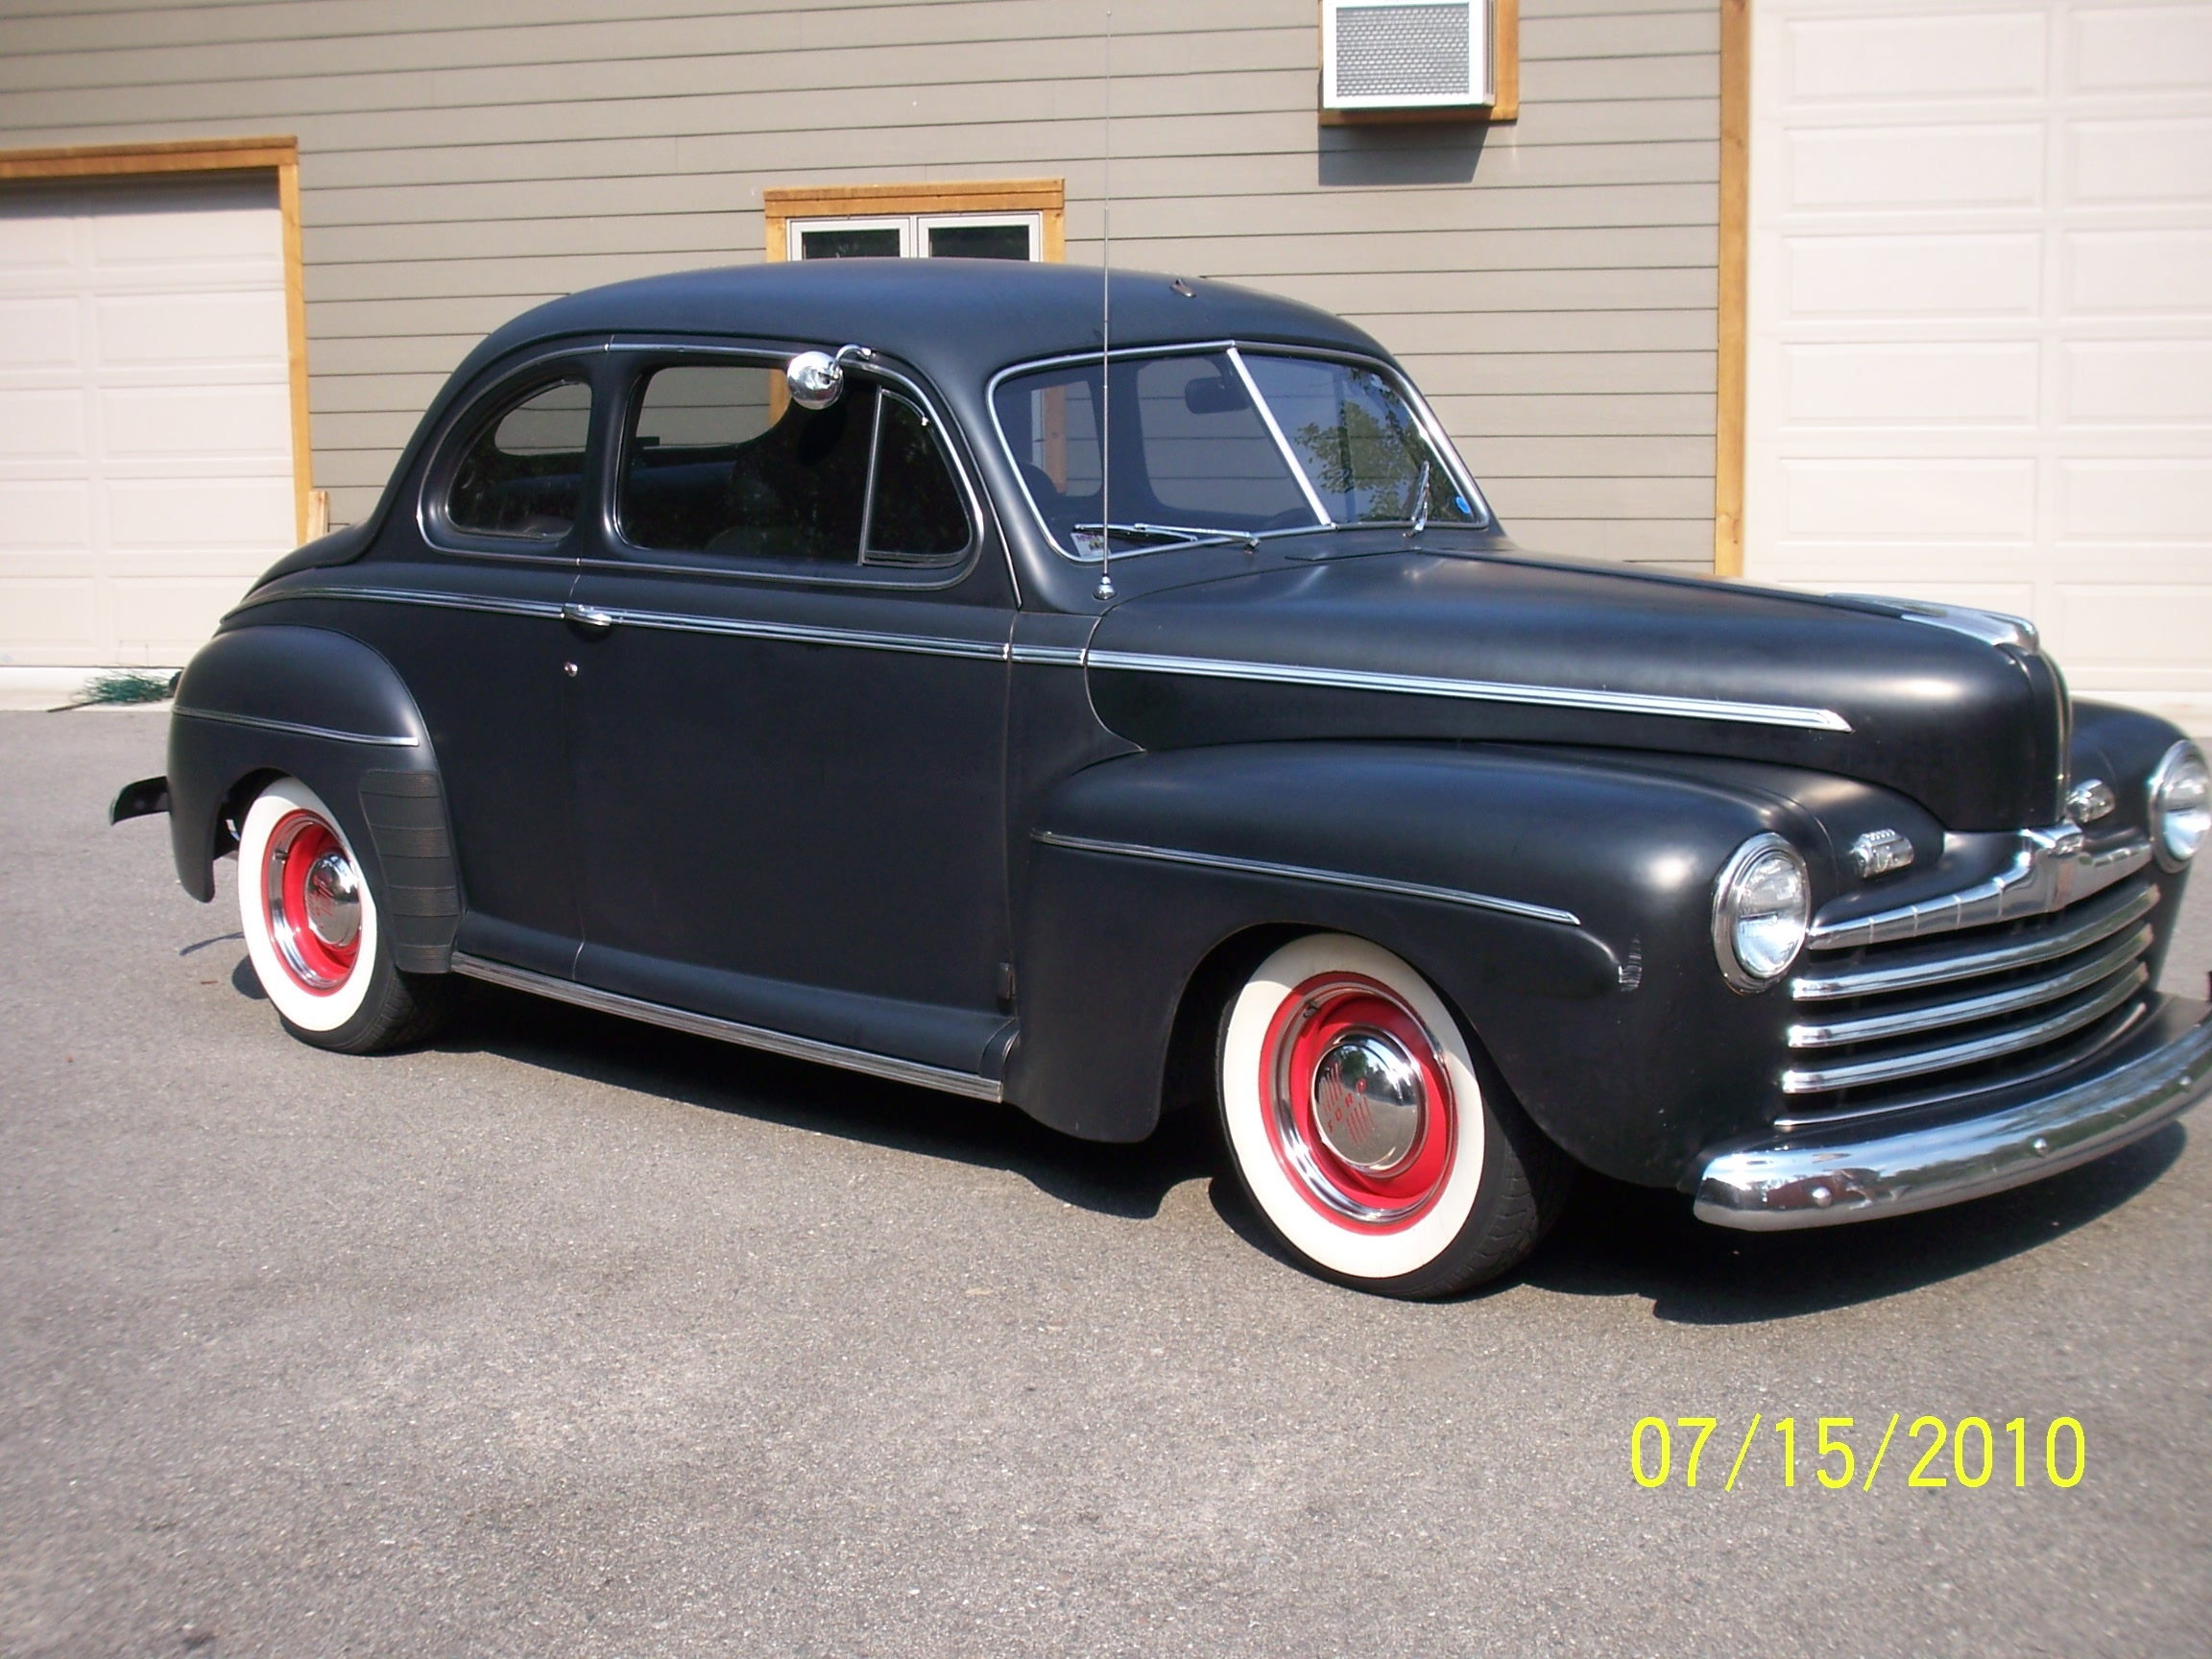 Click image for larger version  Name:46Ford.JPG Views:836 Size:1.77 MB ID:57760